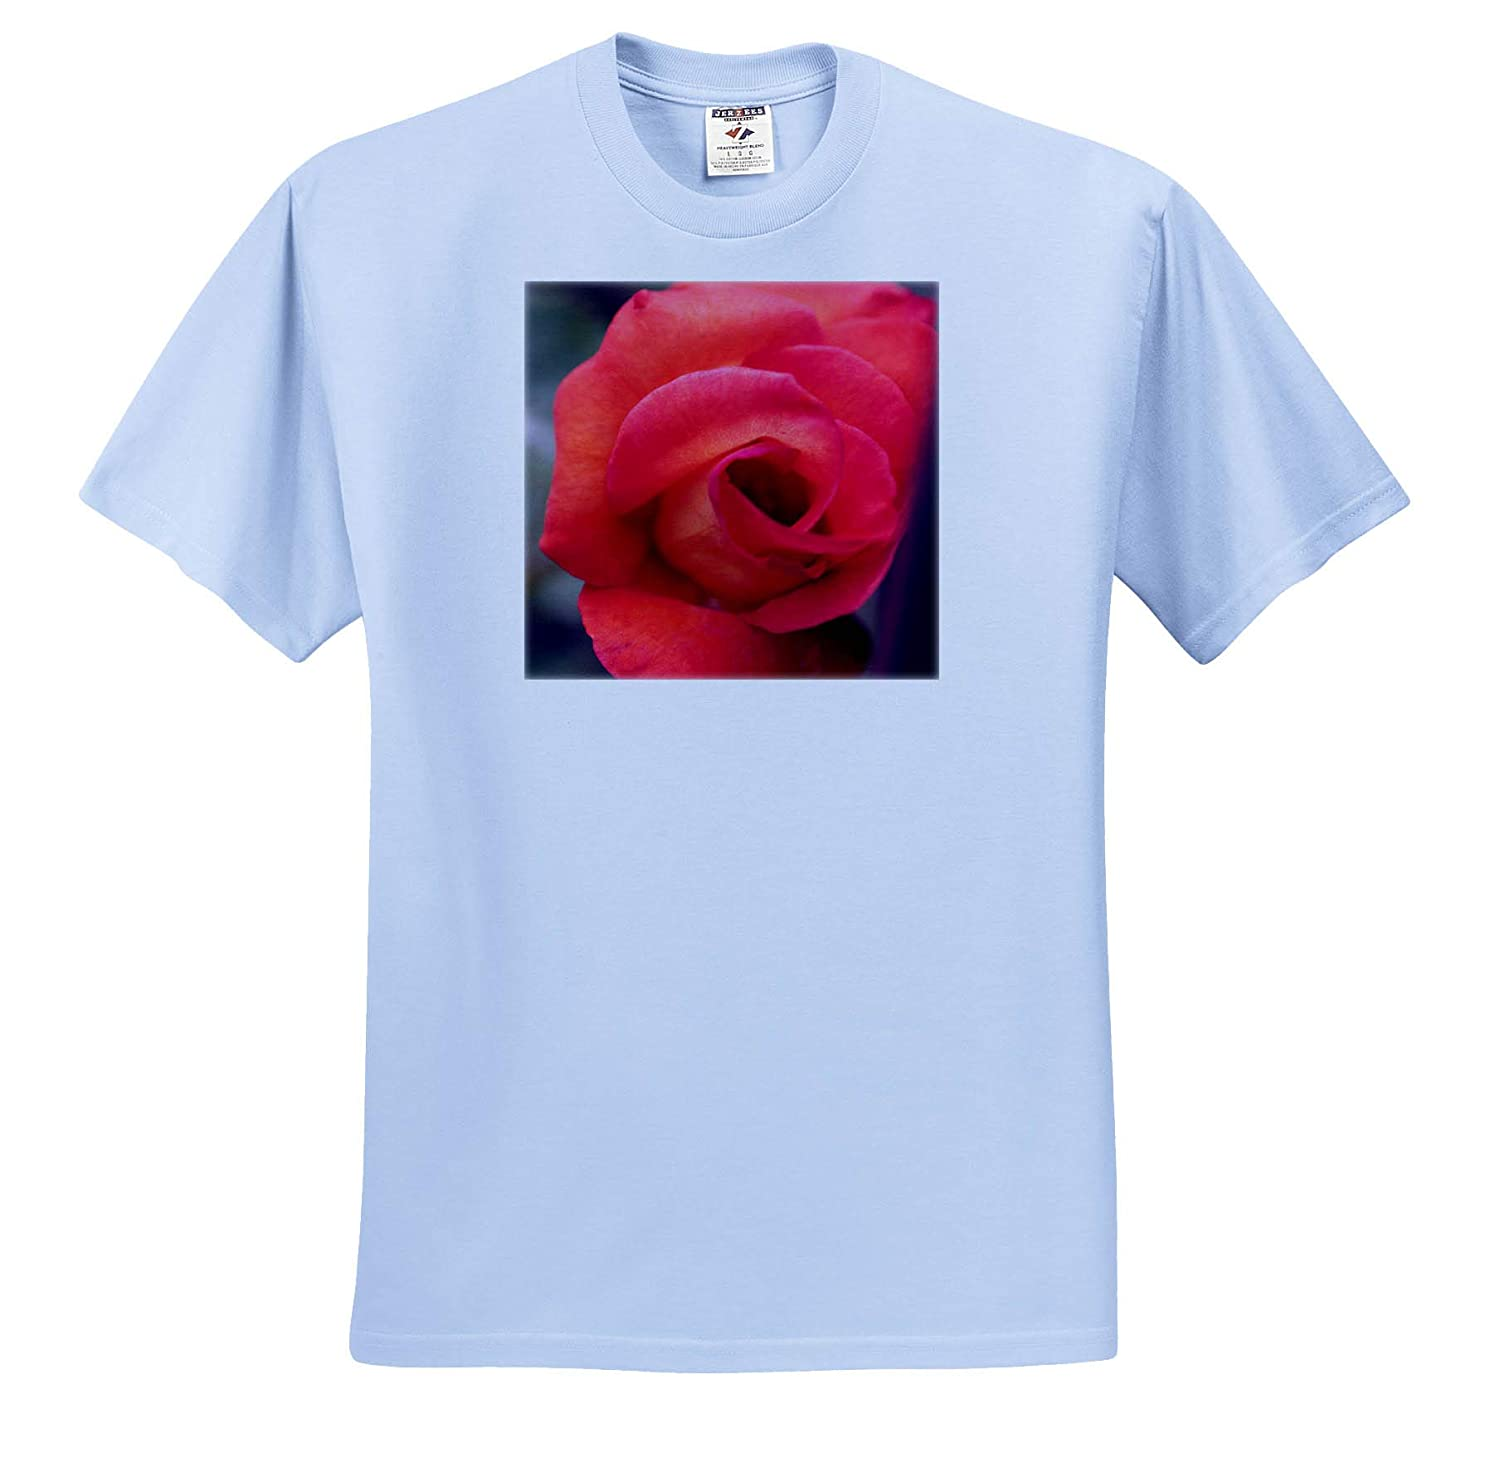 ts/_315582 Macro Photograph of a Playboy Rose About to Burst Open 3dRose Stamp City Flowers - Adult T-Shirt XL